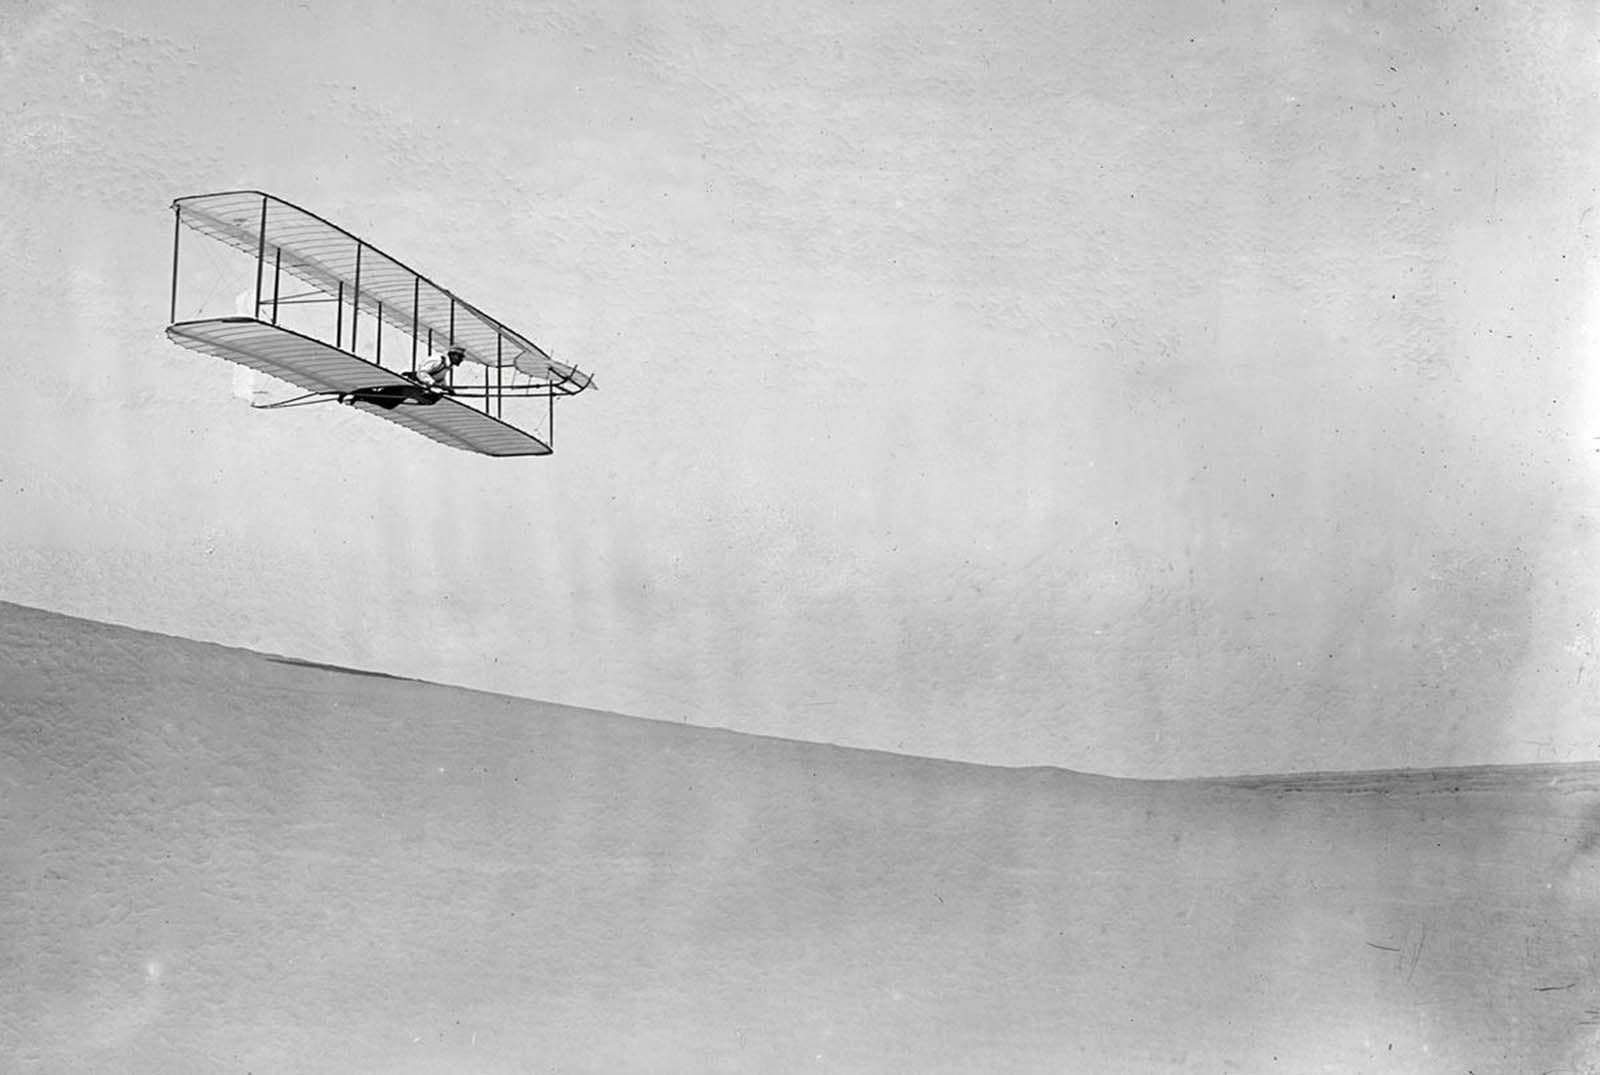 Wilbur Wright pilots a full-size glider down the steep slope of Big Kill Devil Hill in Kitty Hawk, North Carolina, on October 10, 1902. This model was the third iteration of the Wright brothers' early gliders, equipped with wings that would warp to steer, a rear vertical rudder, and a forward elevator.